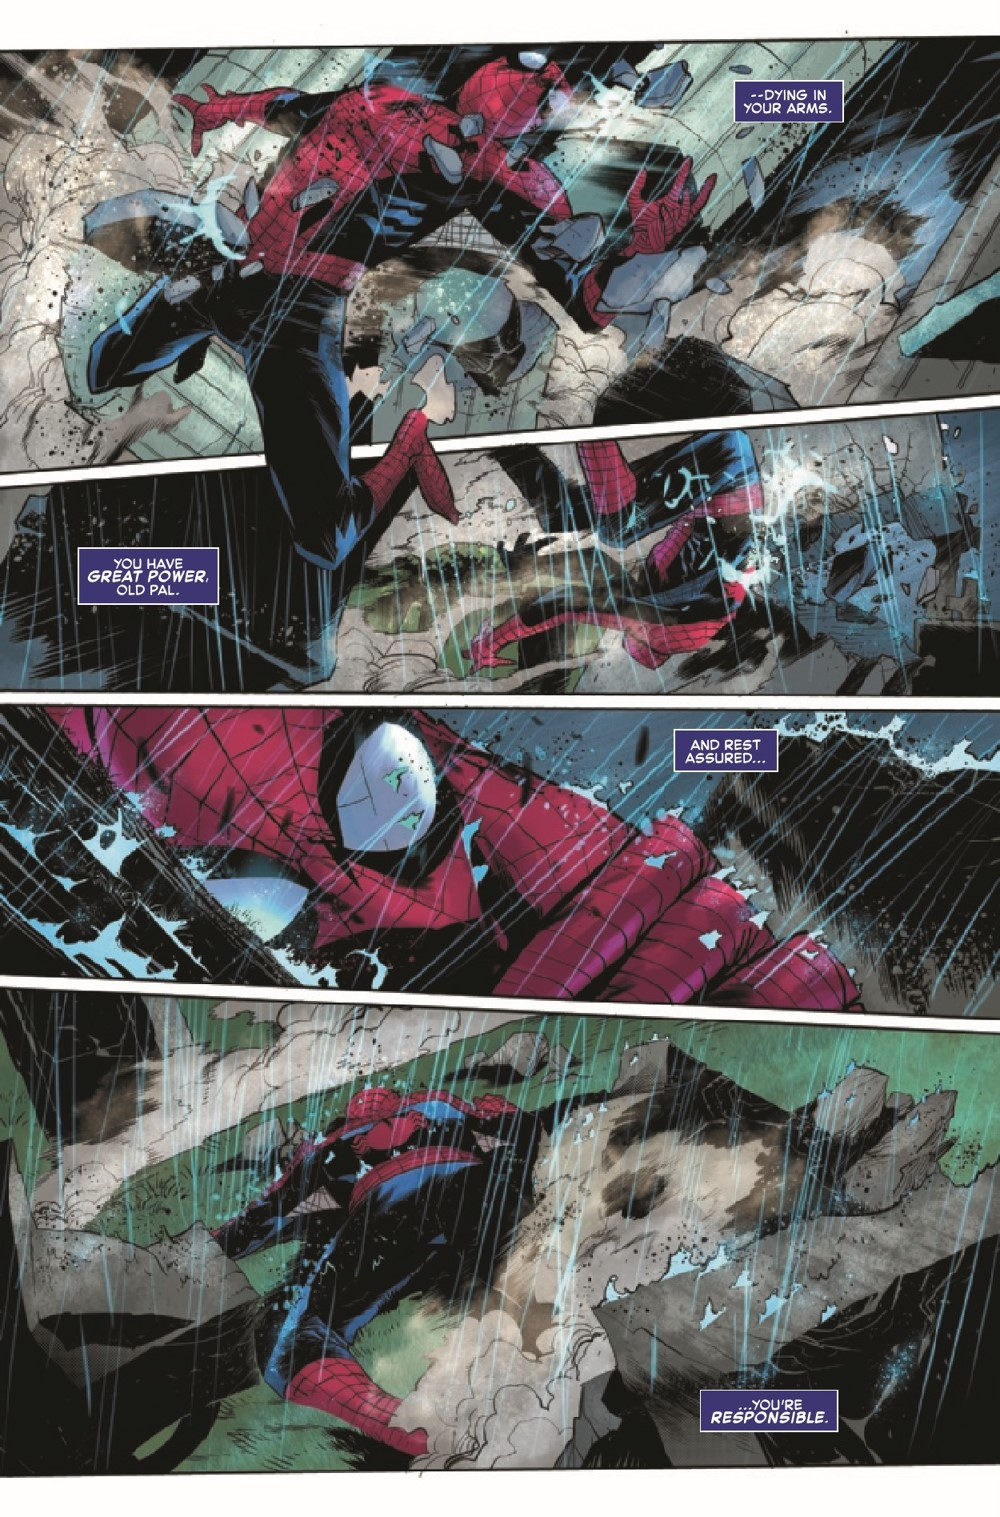 ASM2018071_Preview-6 ComicList Previews: AMAZING SPIDER-MAN #71